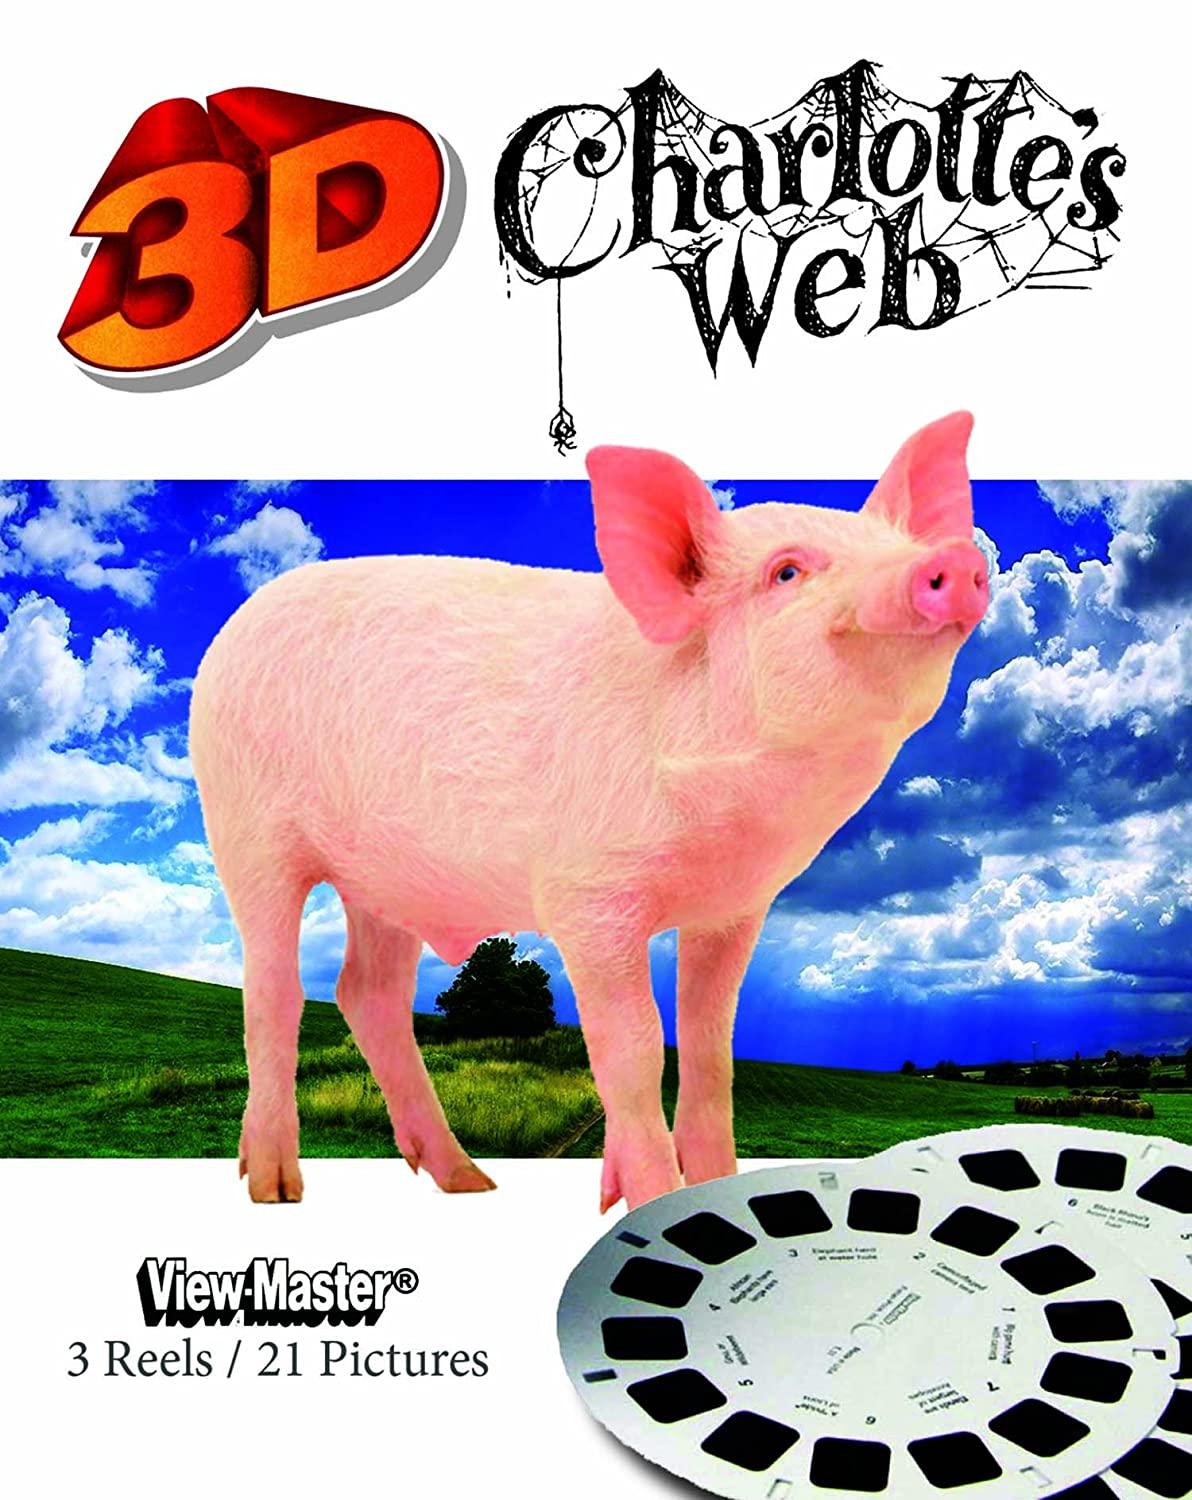 ViewMaster Charlotte's Web - 3 Reel Set [Toy] Quality Deals